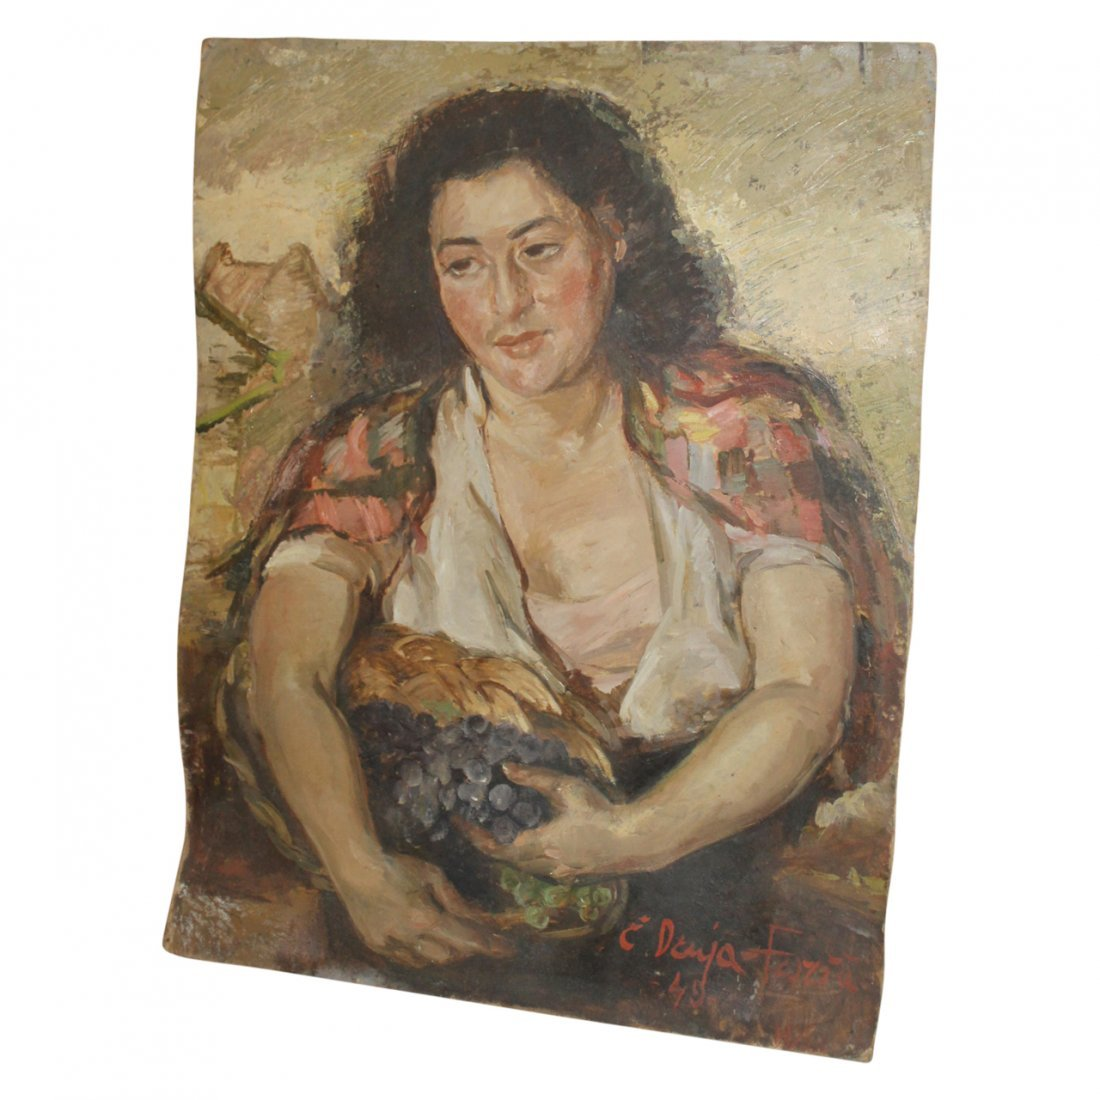 Painting of a Woman by Forshu Druga